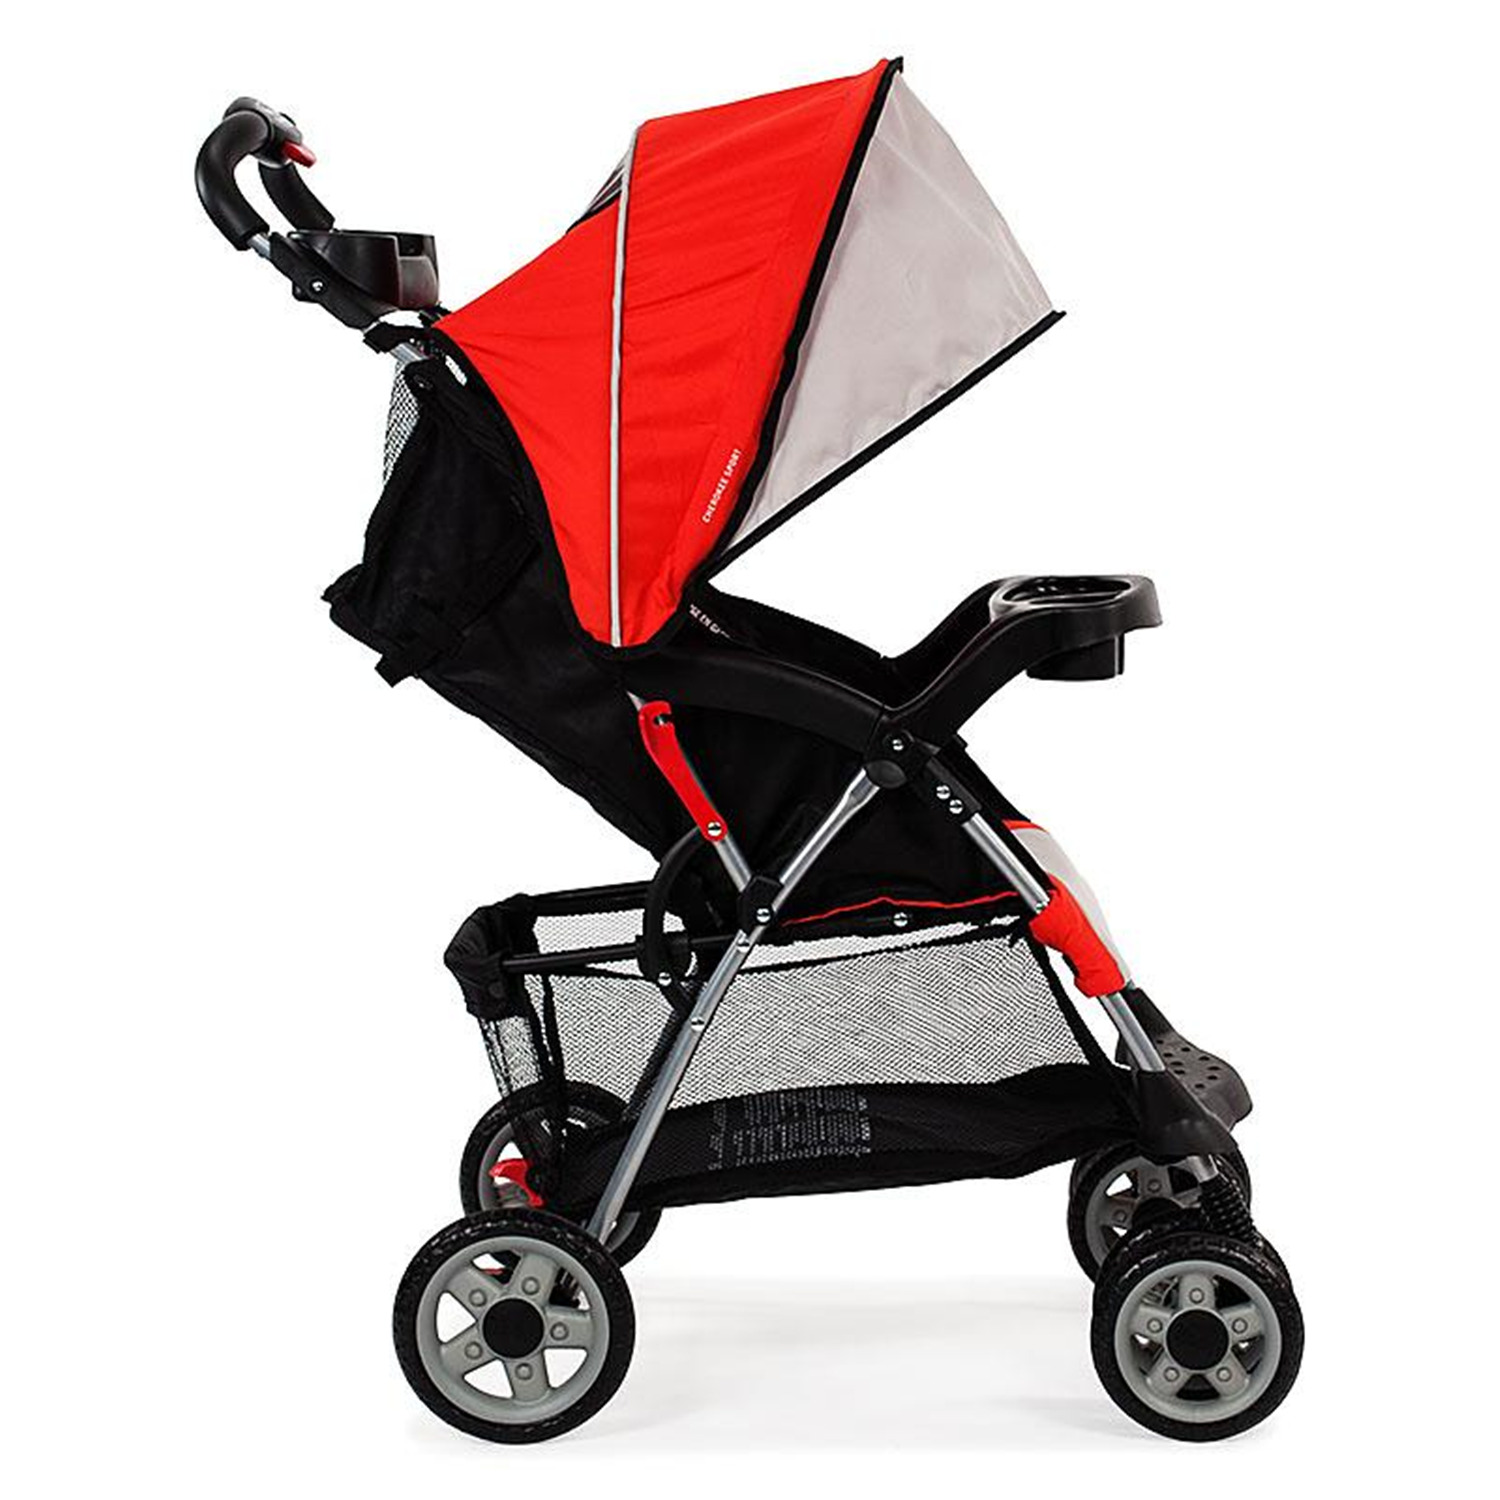 jeep jeep cherokee sport stroller by oj commerce jl029 xrt1. Cars Review. Best American Auto & Cars Review